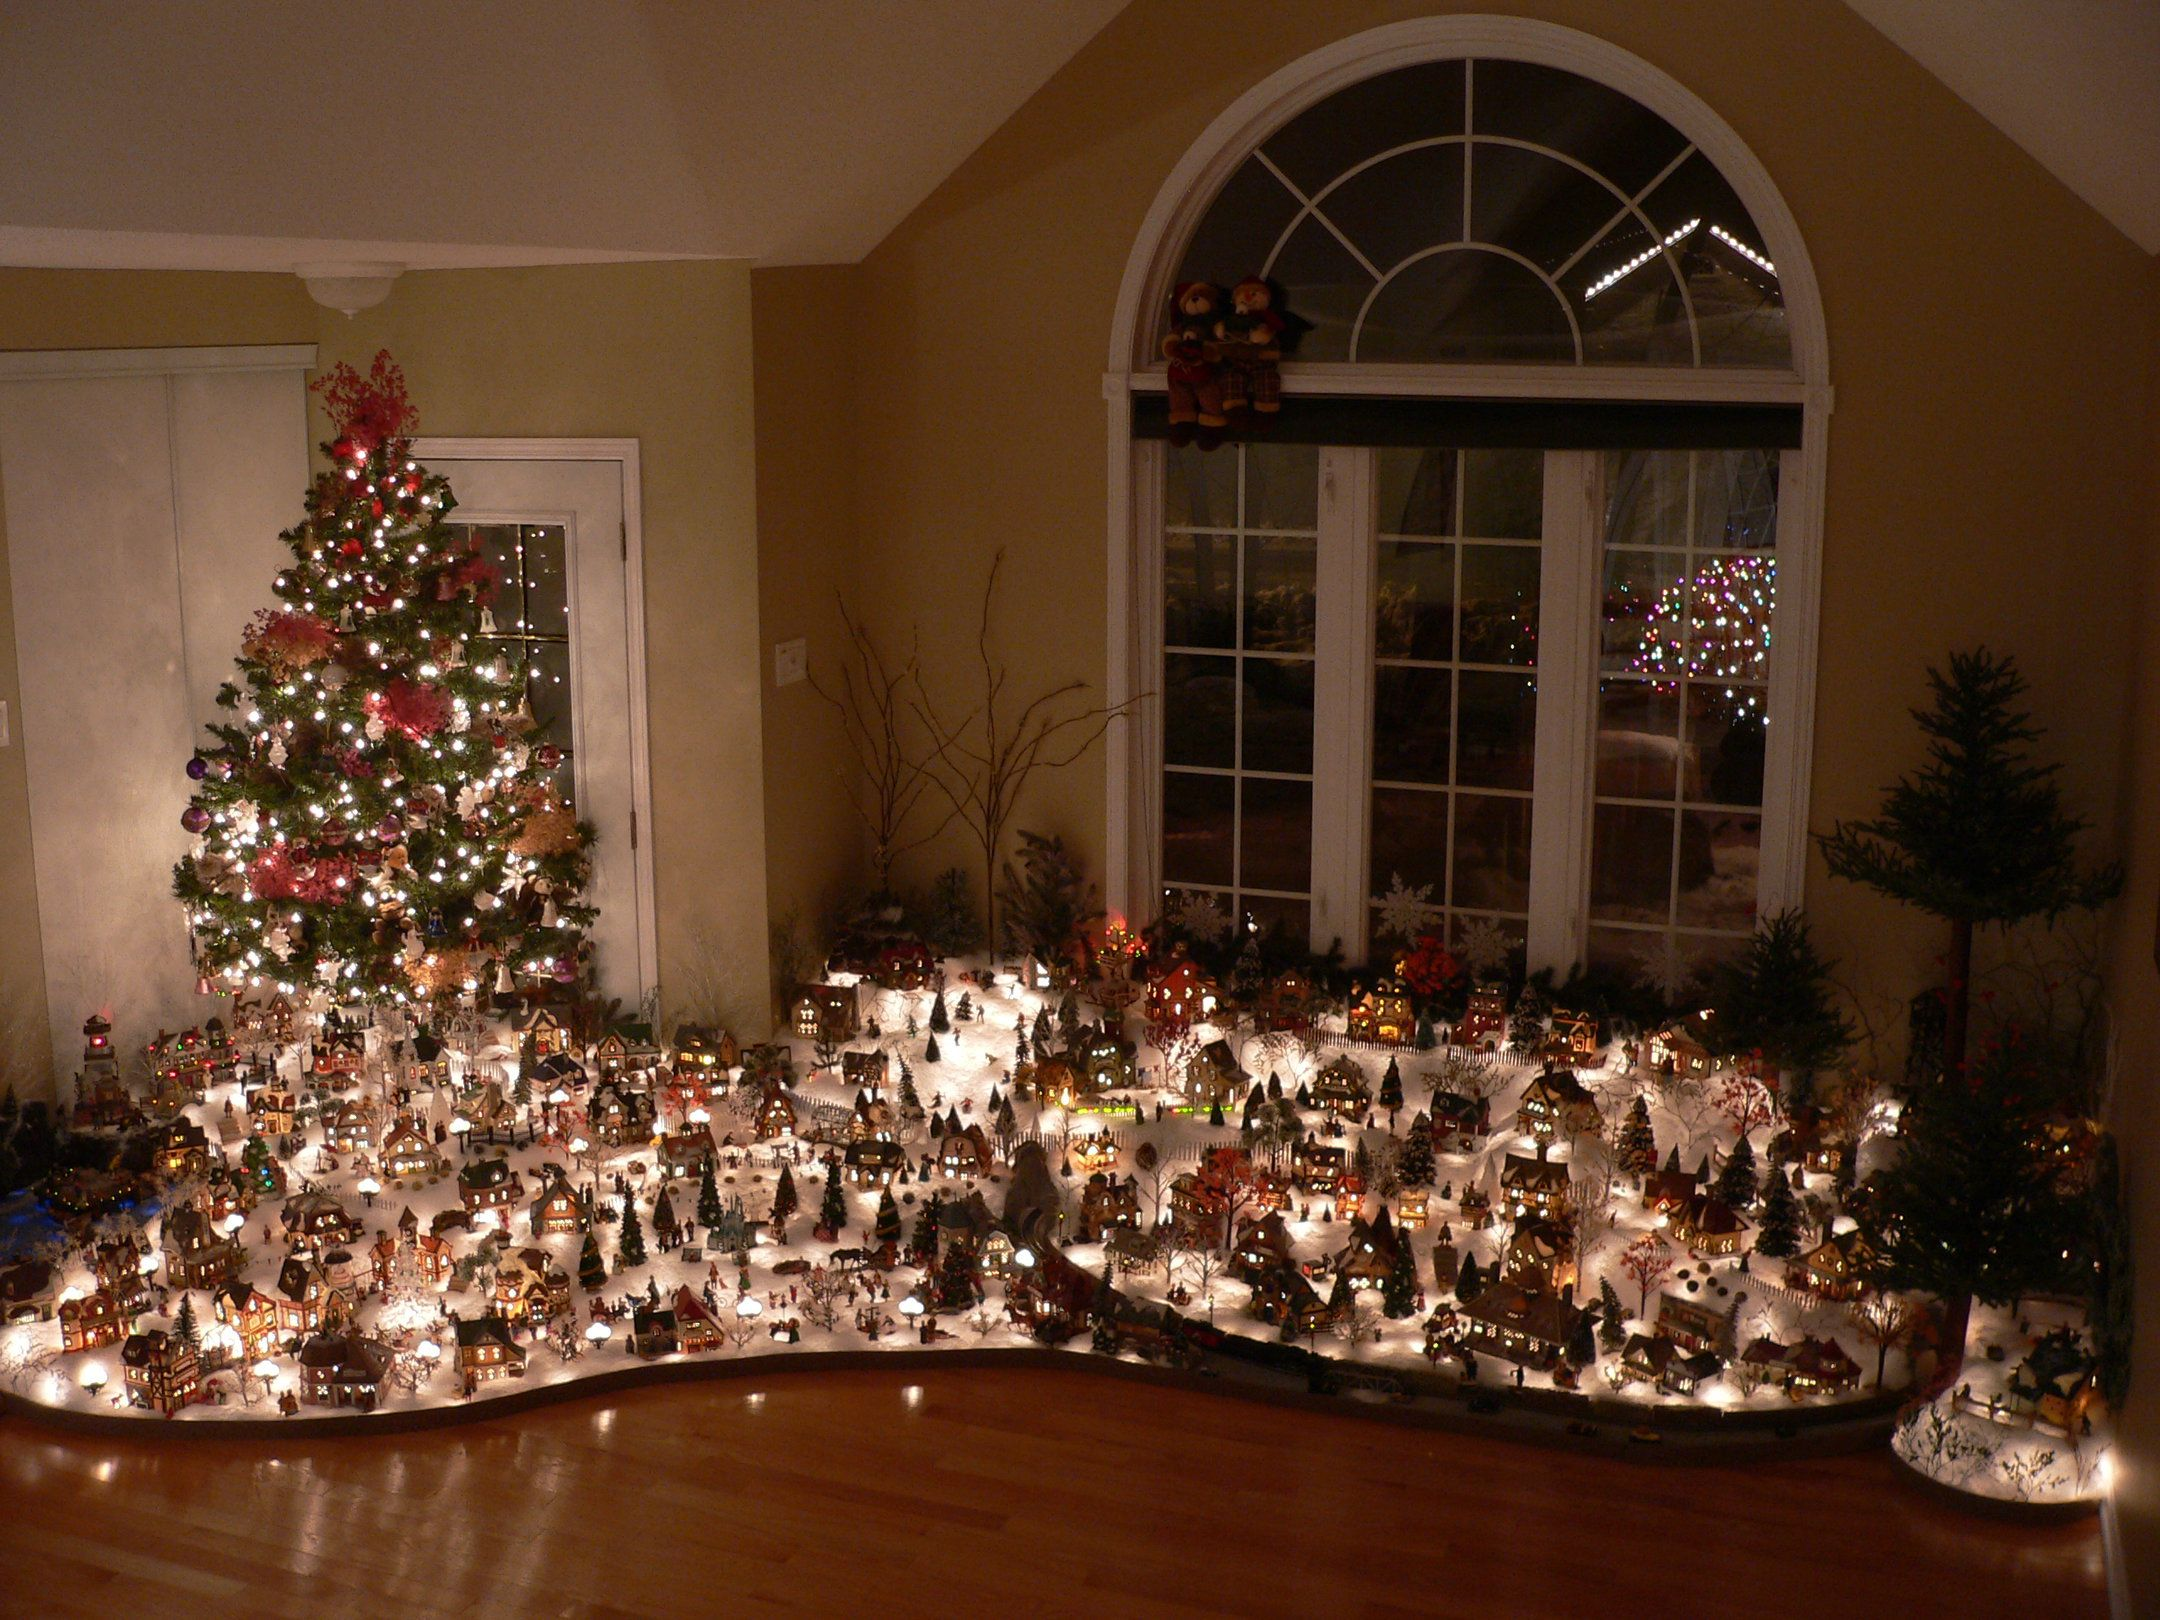 20 amazing christmas village display pictures gallery for Decoration 56